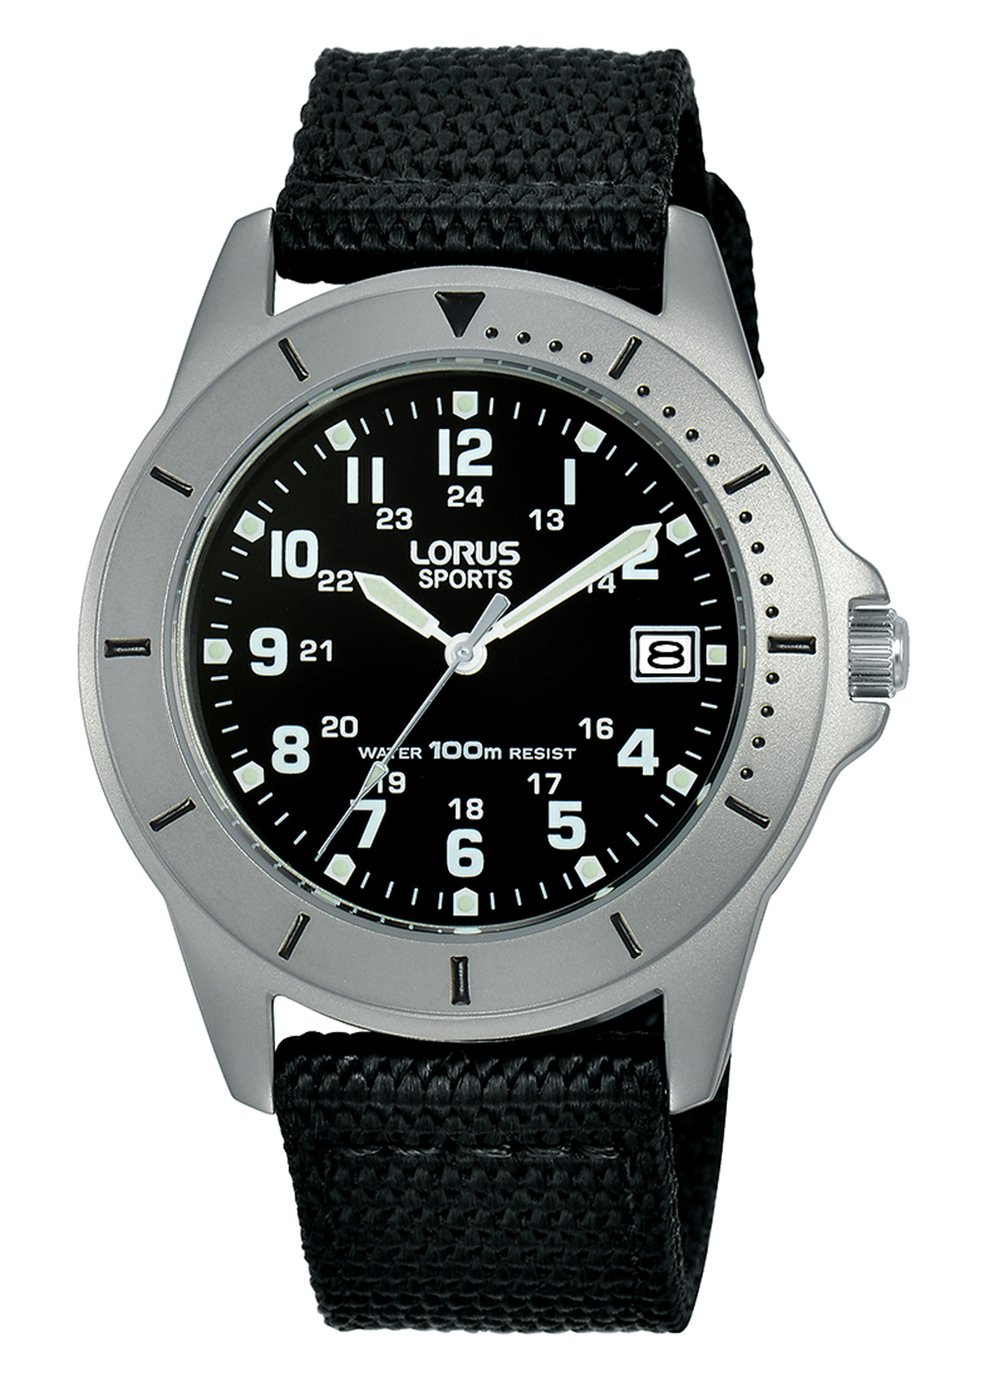 Lorus Men's Black Canvas Strap Sports Watch